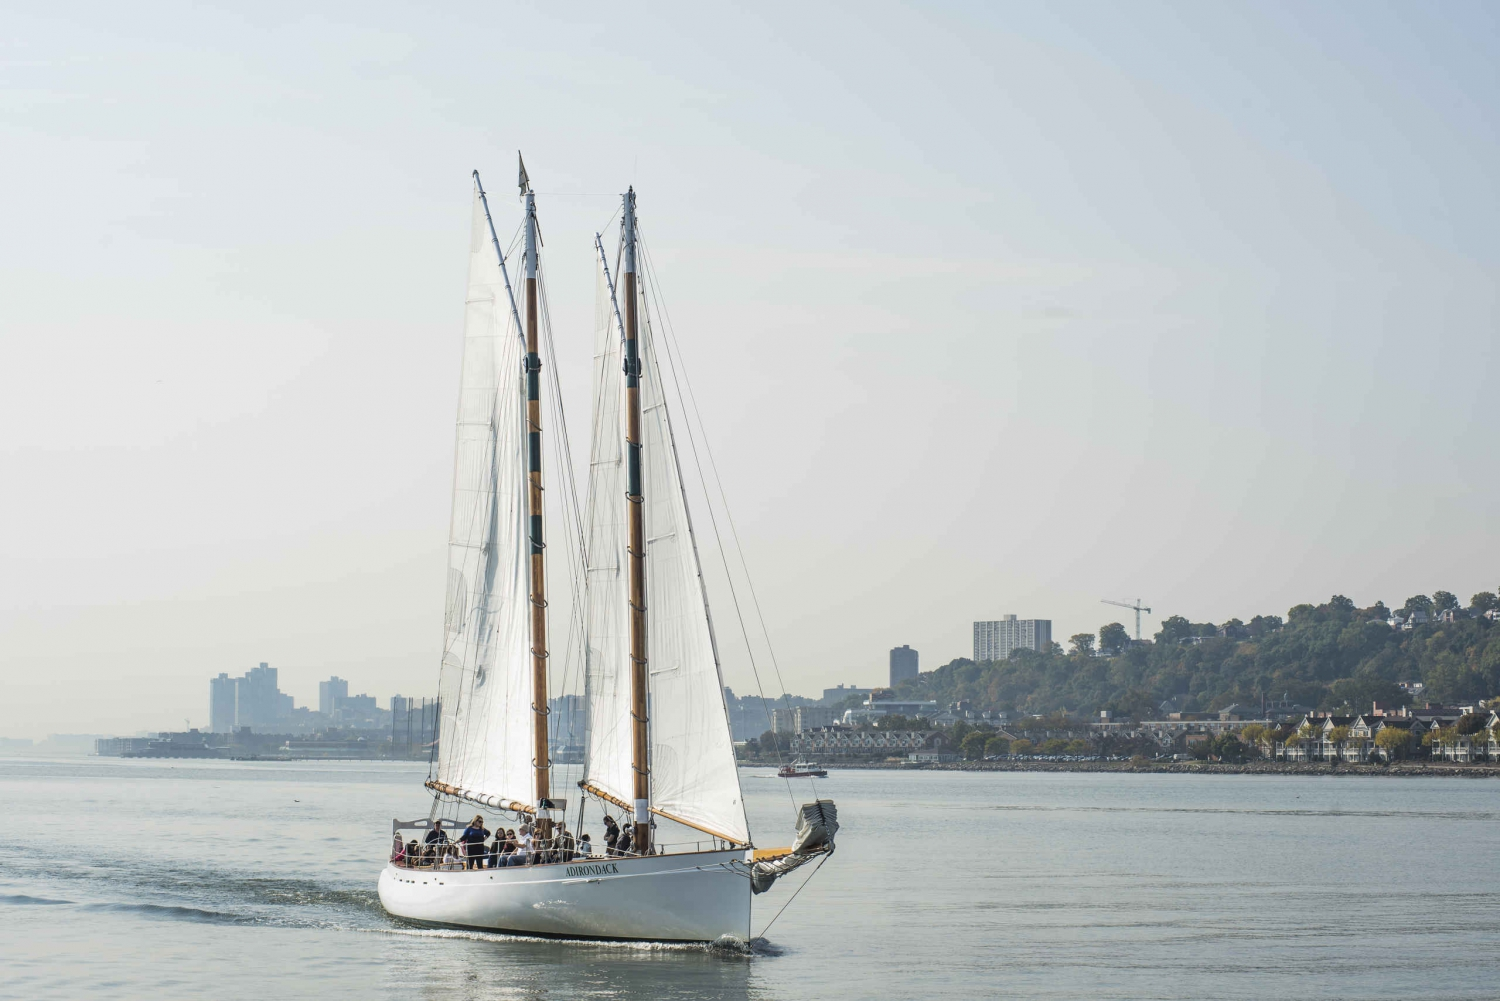 Fall Foliage Schooner Sail Up the Hudson River